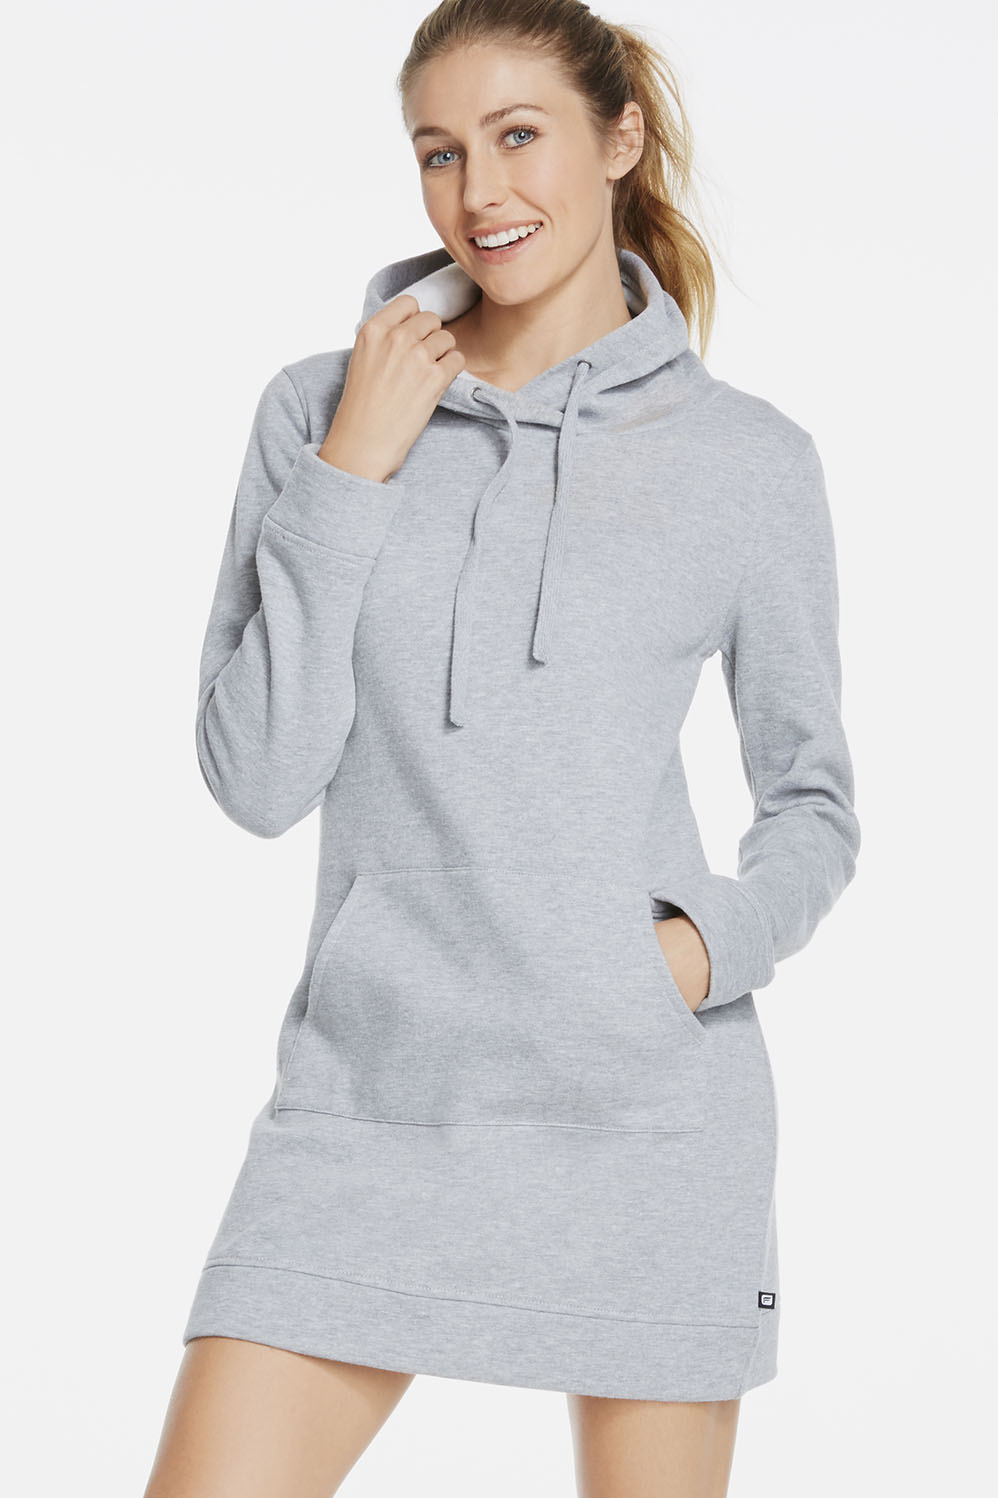 Buy SweatyRocks Sweatshirt Dress Hoodie Pockets Grey Dress and other Casual at failvideo.ml Our wide selection is elegible for free shipping and free returns/5().